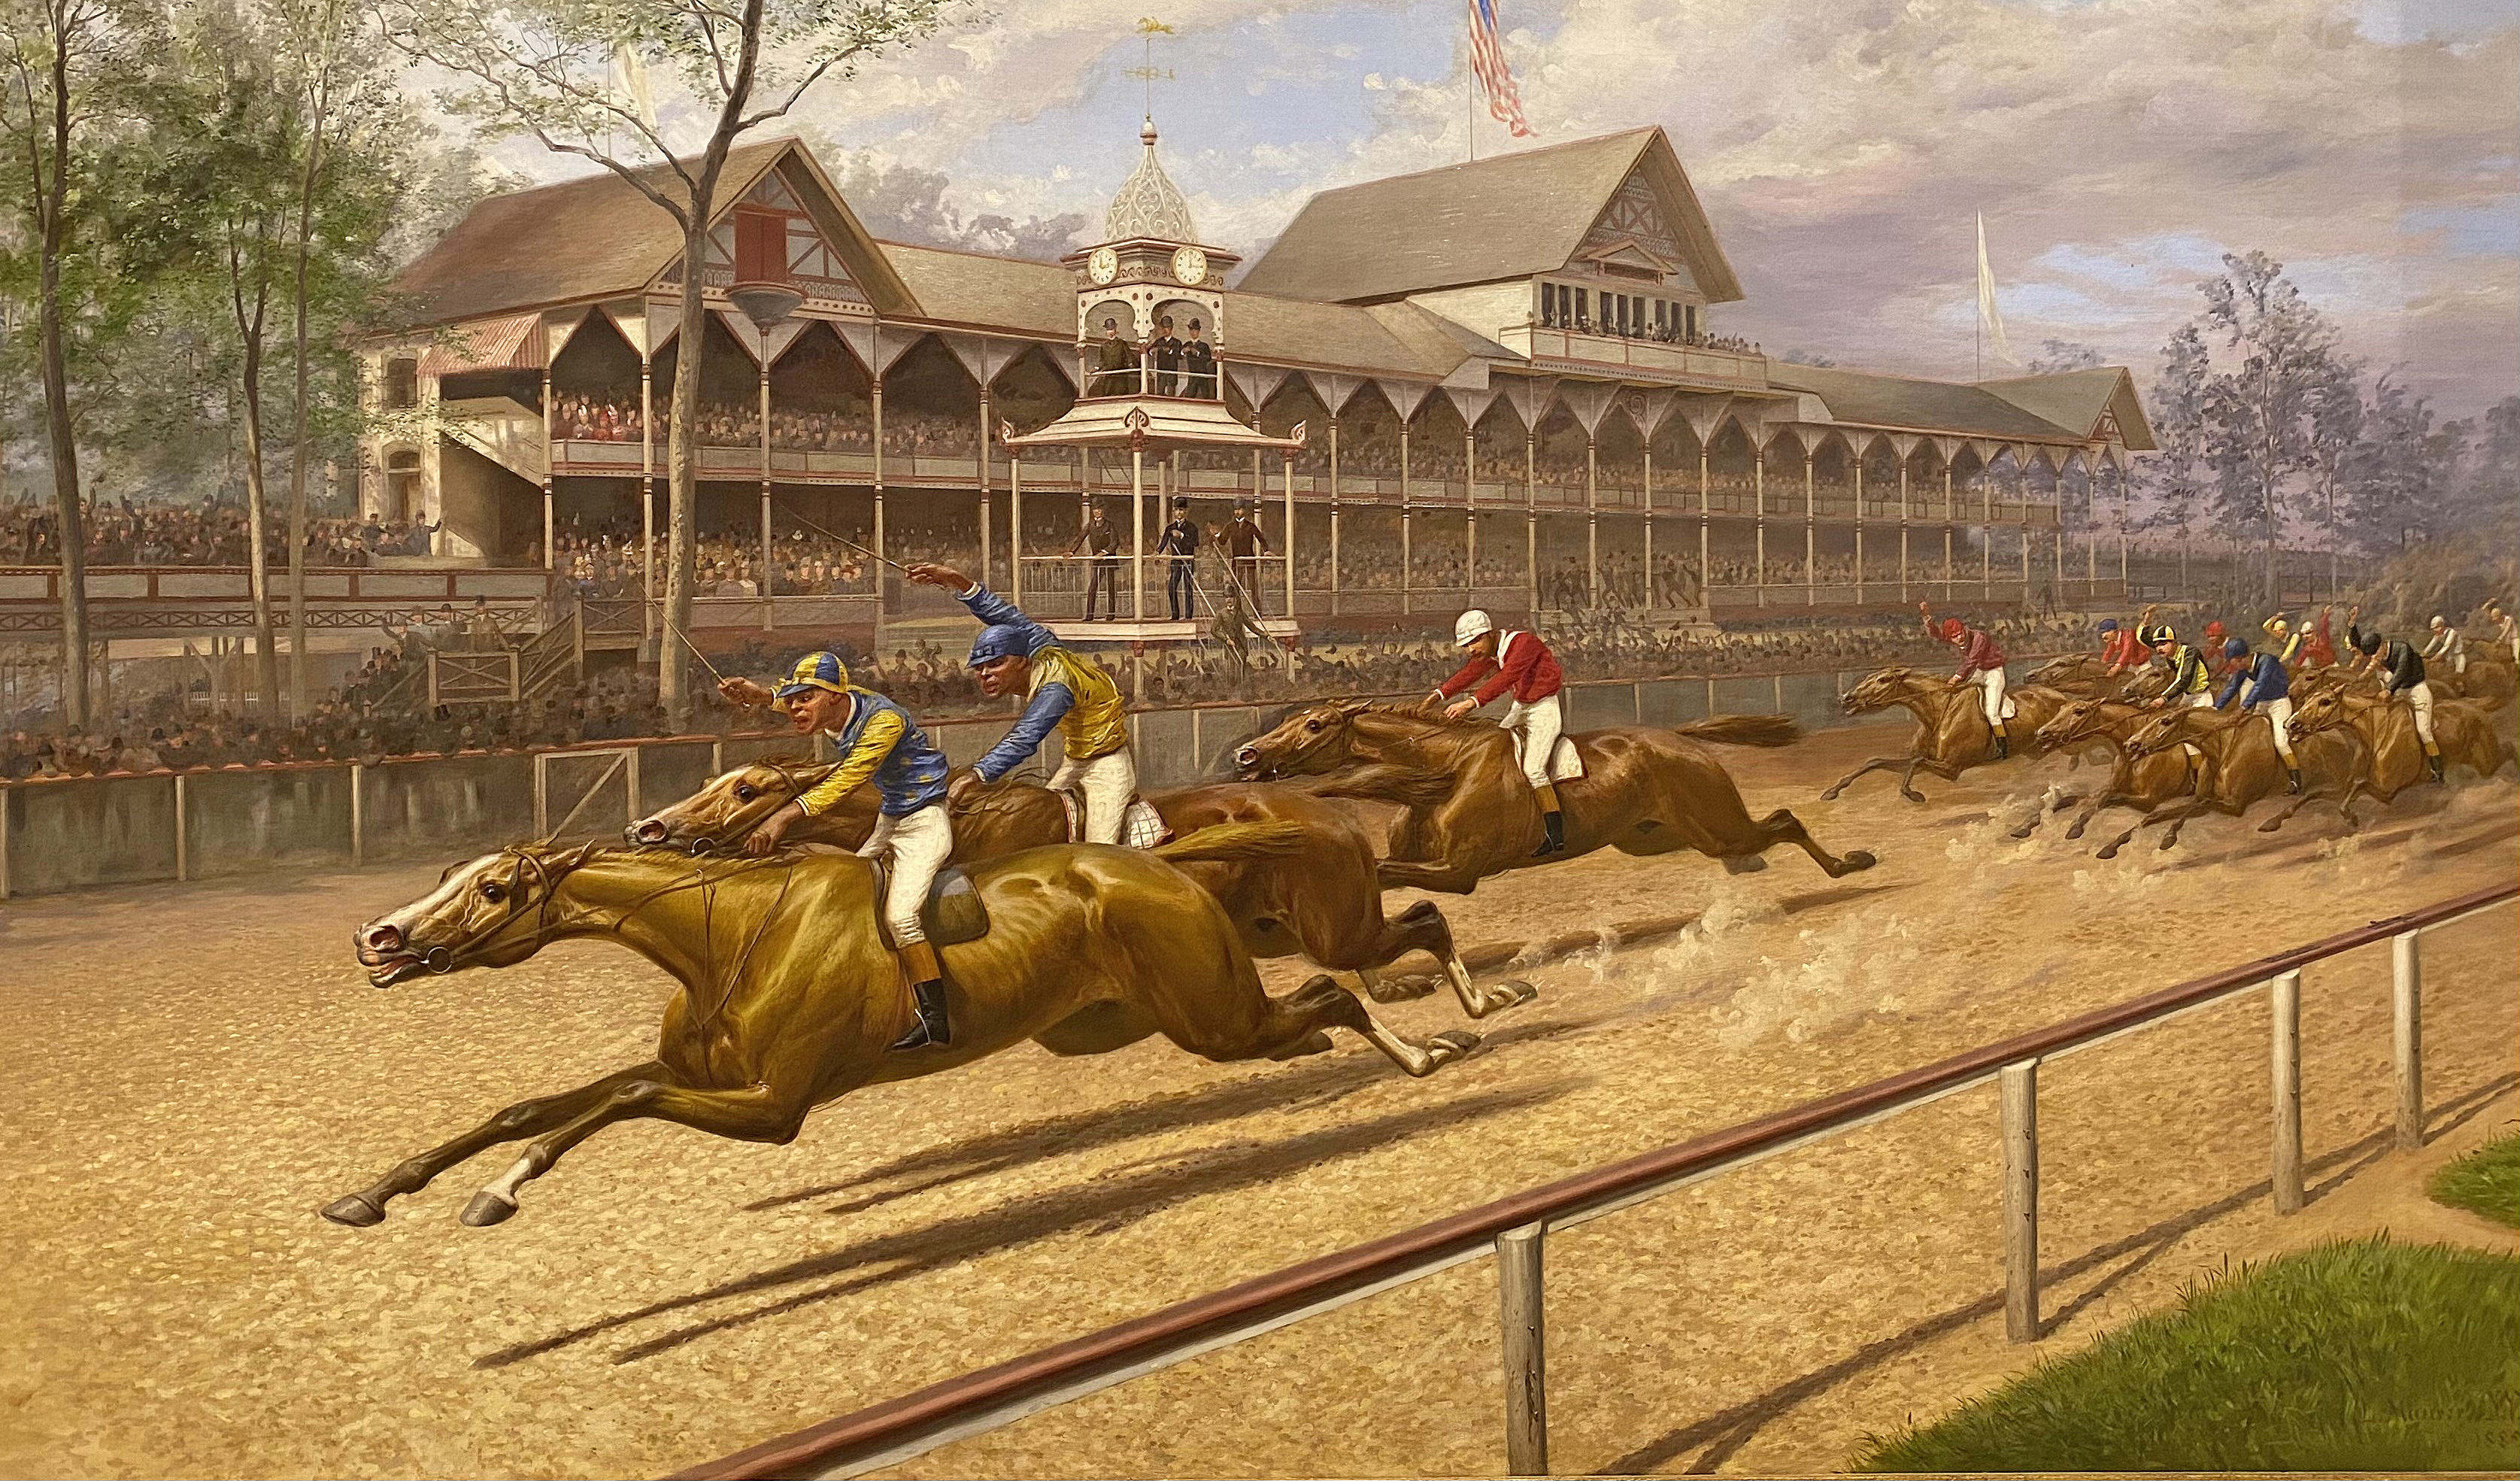 "First Futurity by L. Maurer, 1889: Proctor Knott with Shelby ""Pike"" Barnes in front winning the race (Museum Collection)"